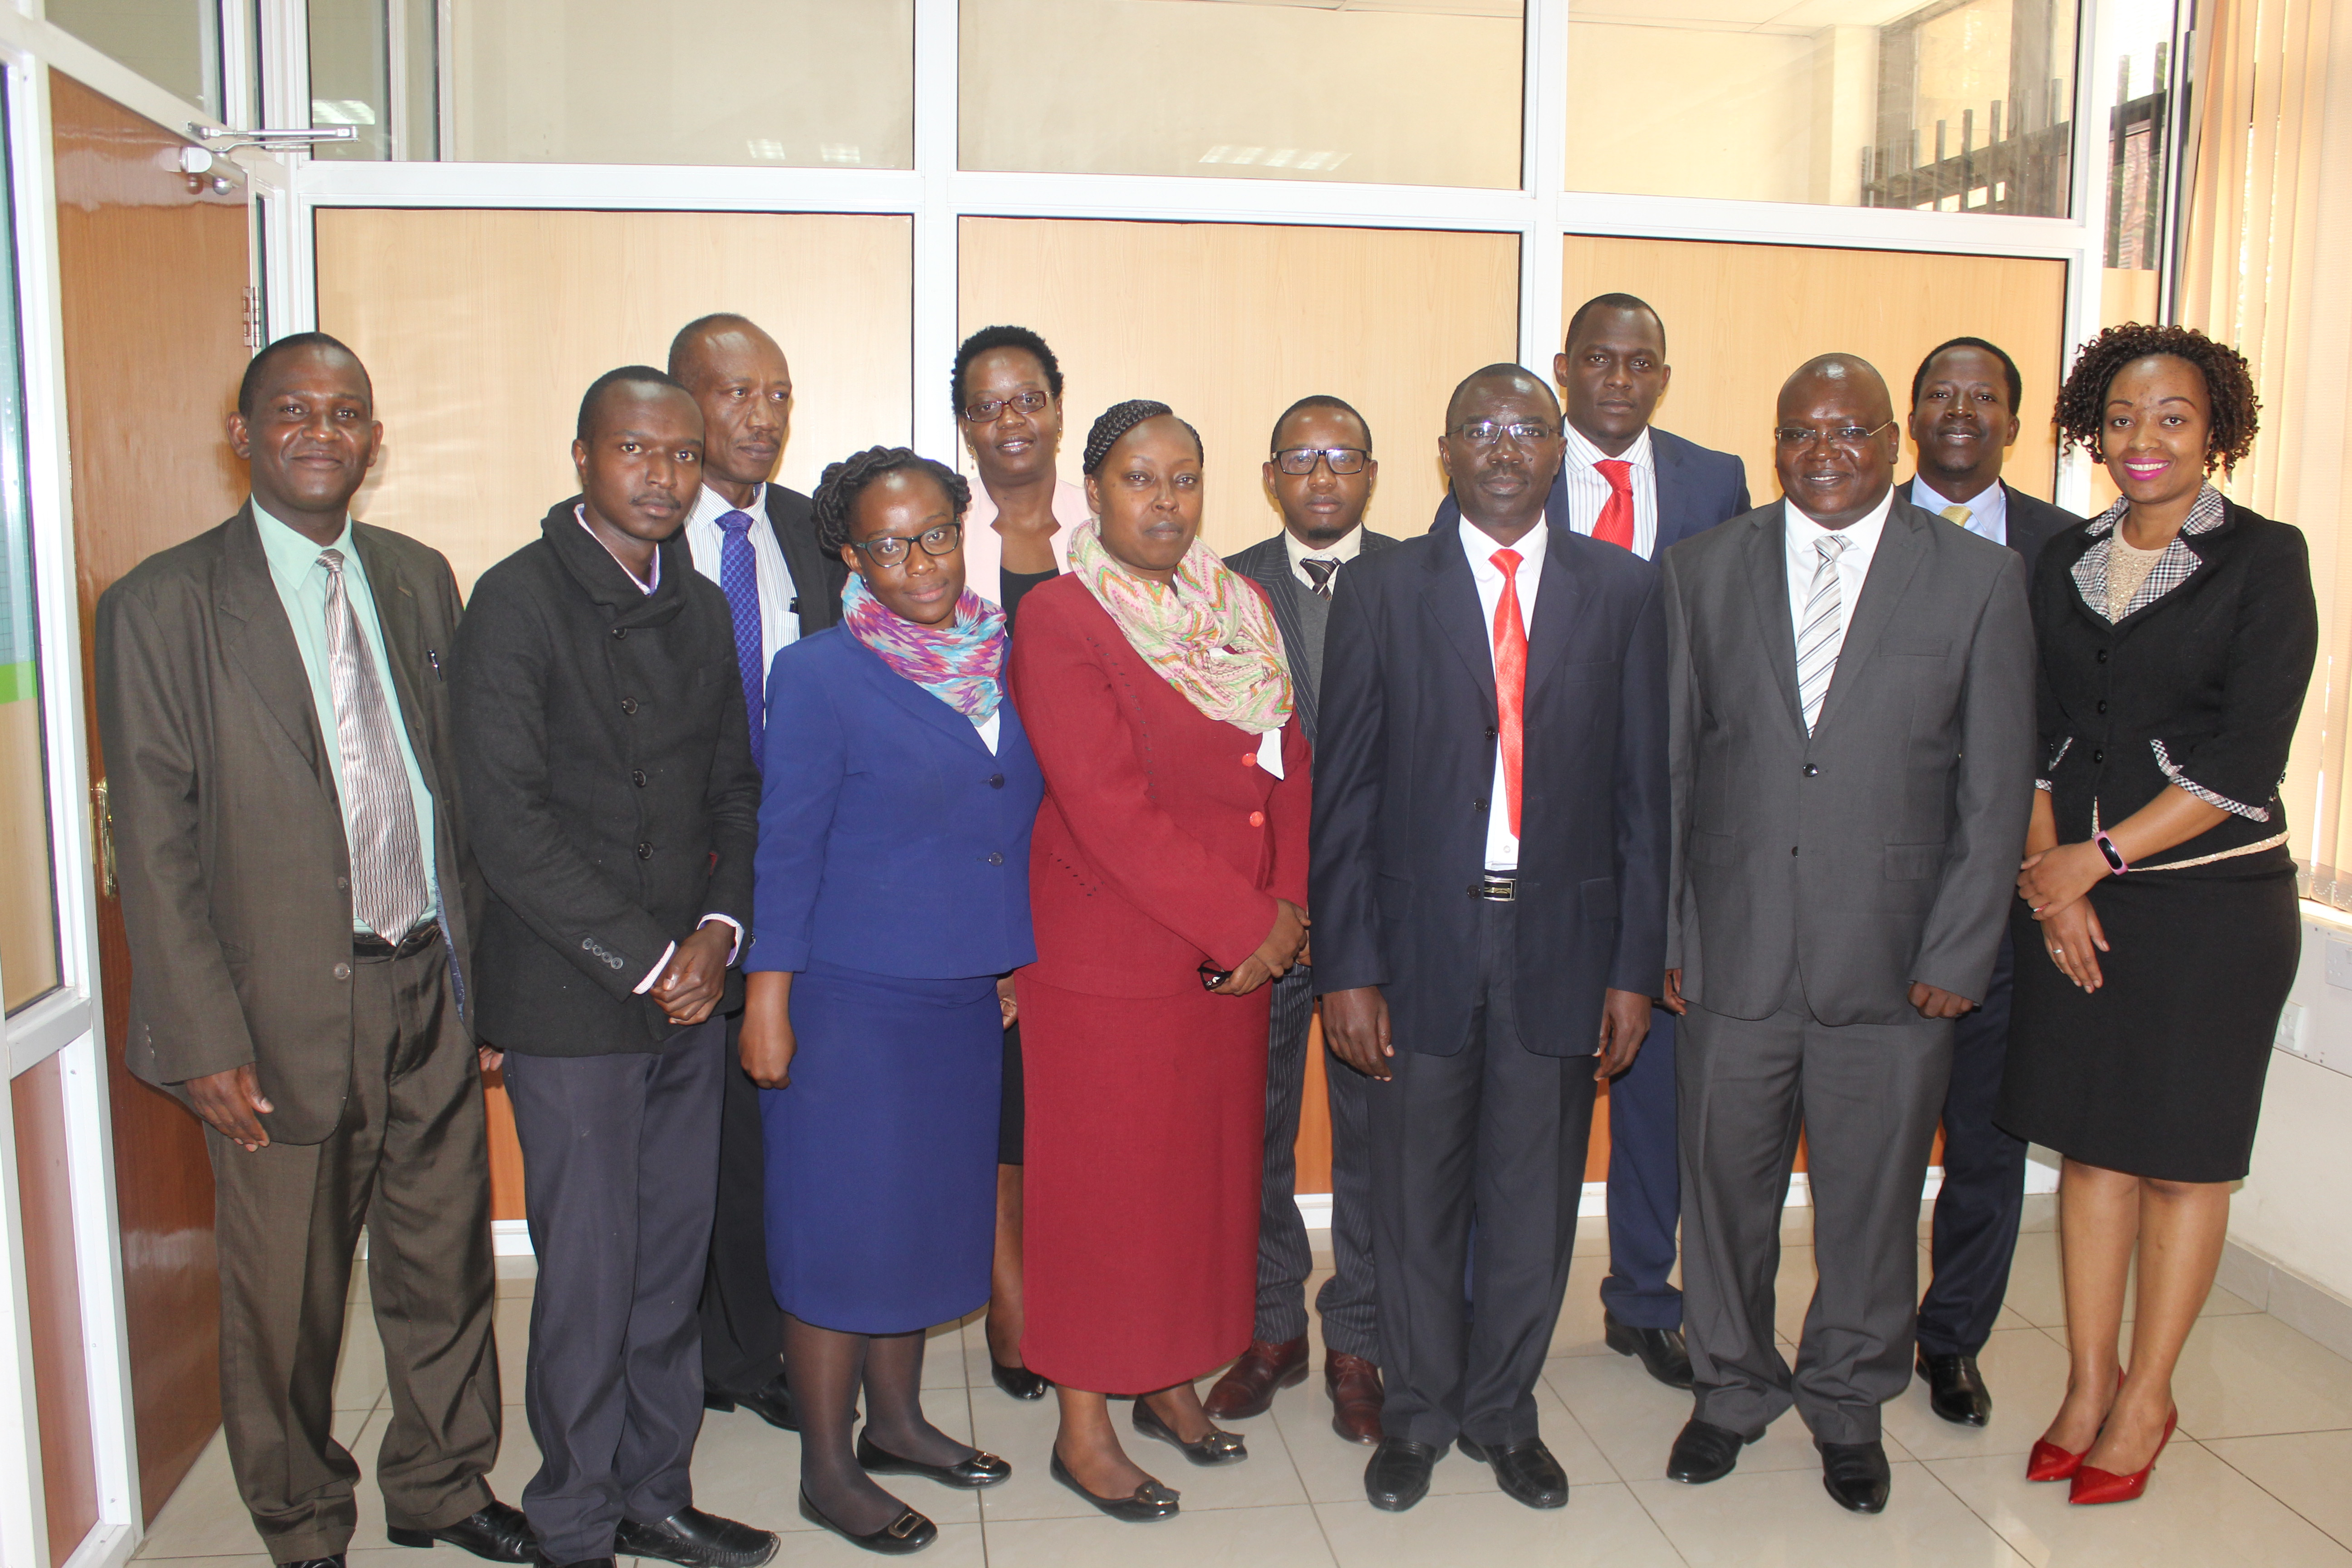 Members of NCCJR in a group photo with officials from the NCRC after their meeting